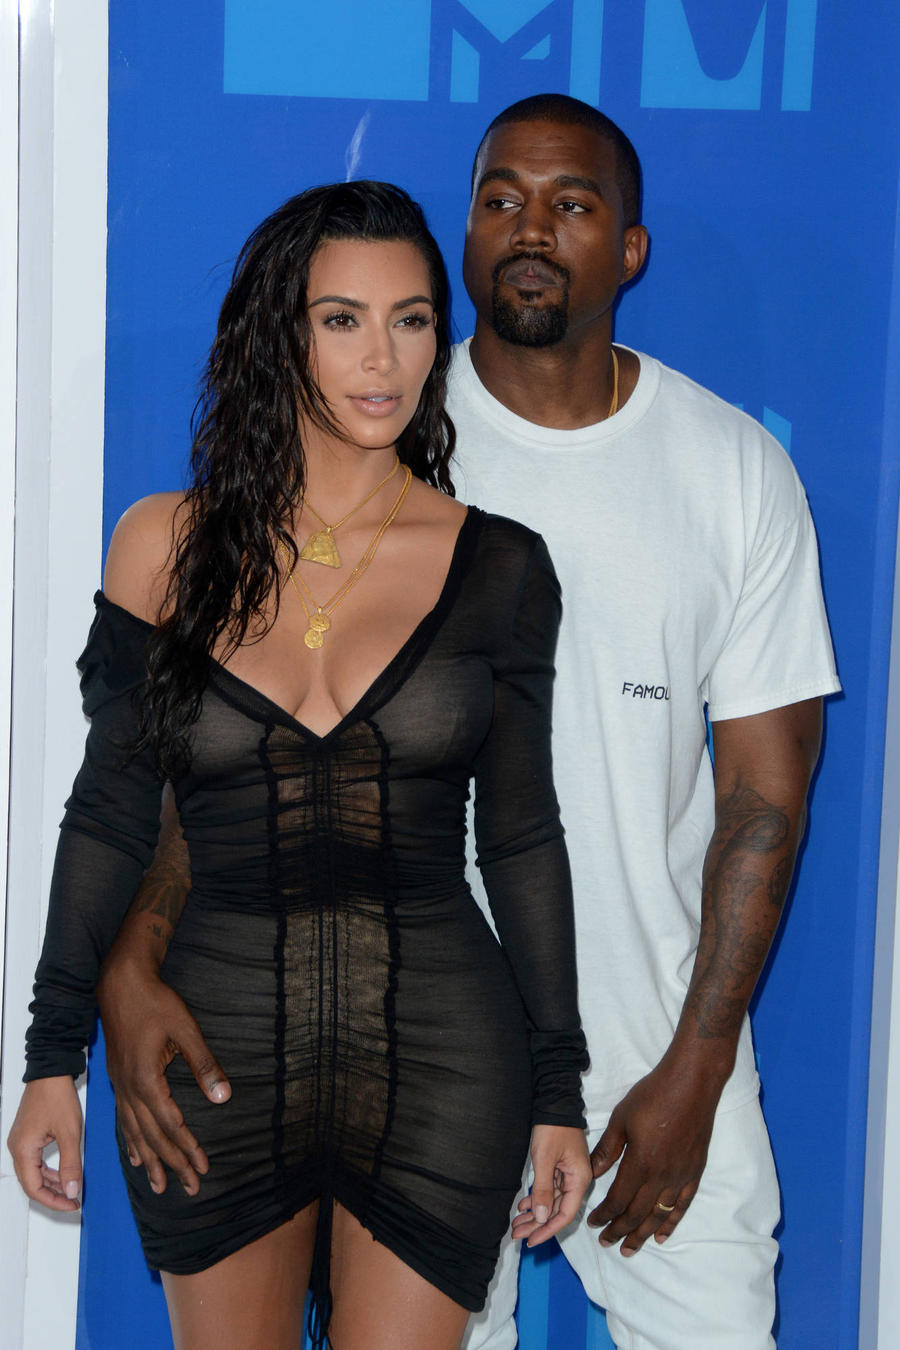 Kim Kardashian Abandons Father's Tribute As Kanye West Is Hospitalised